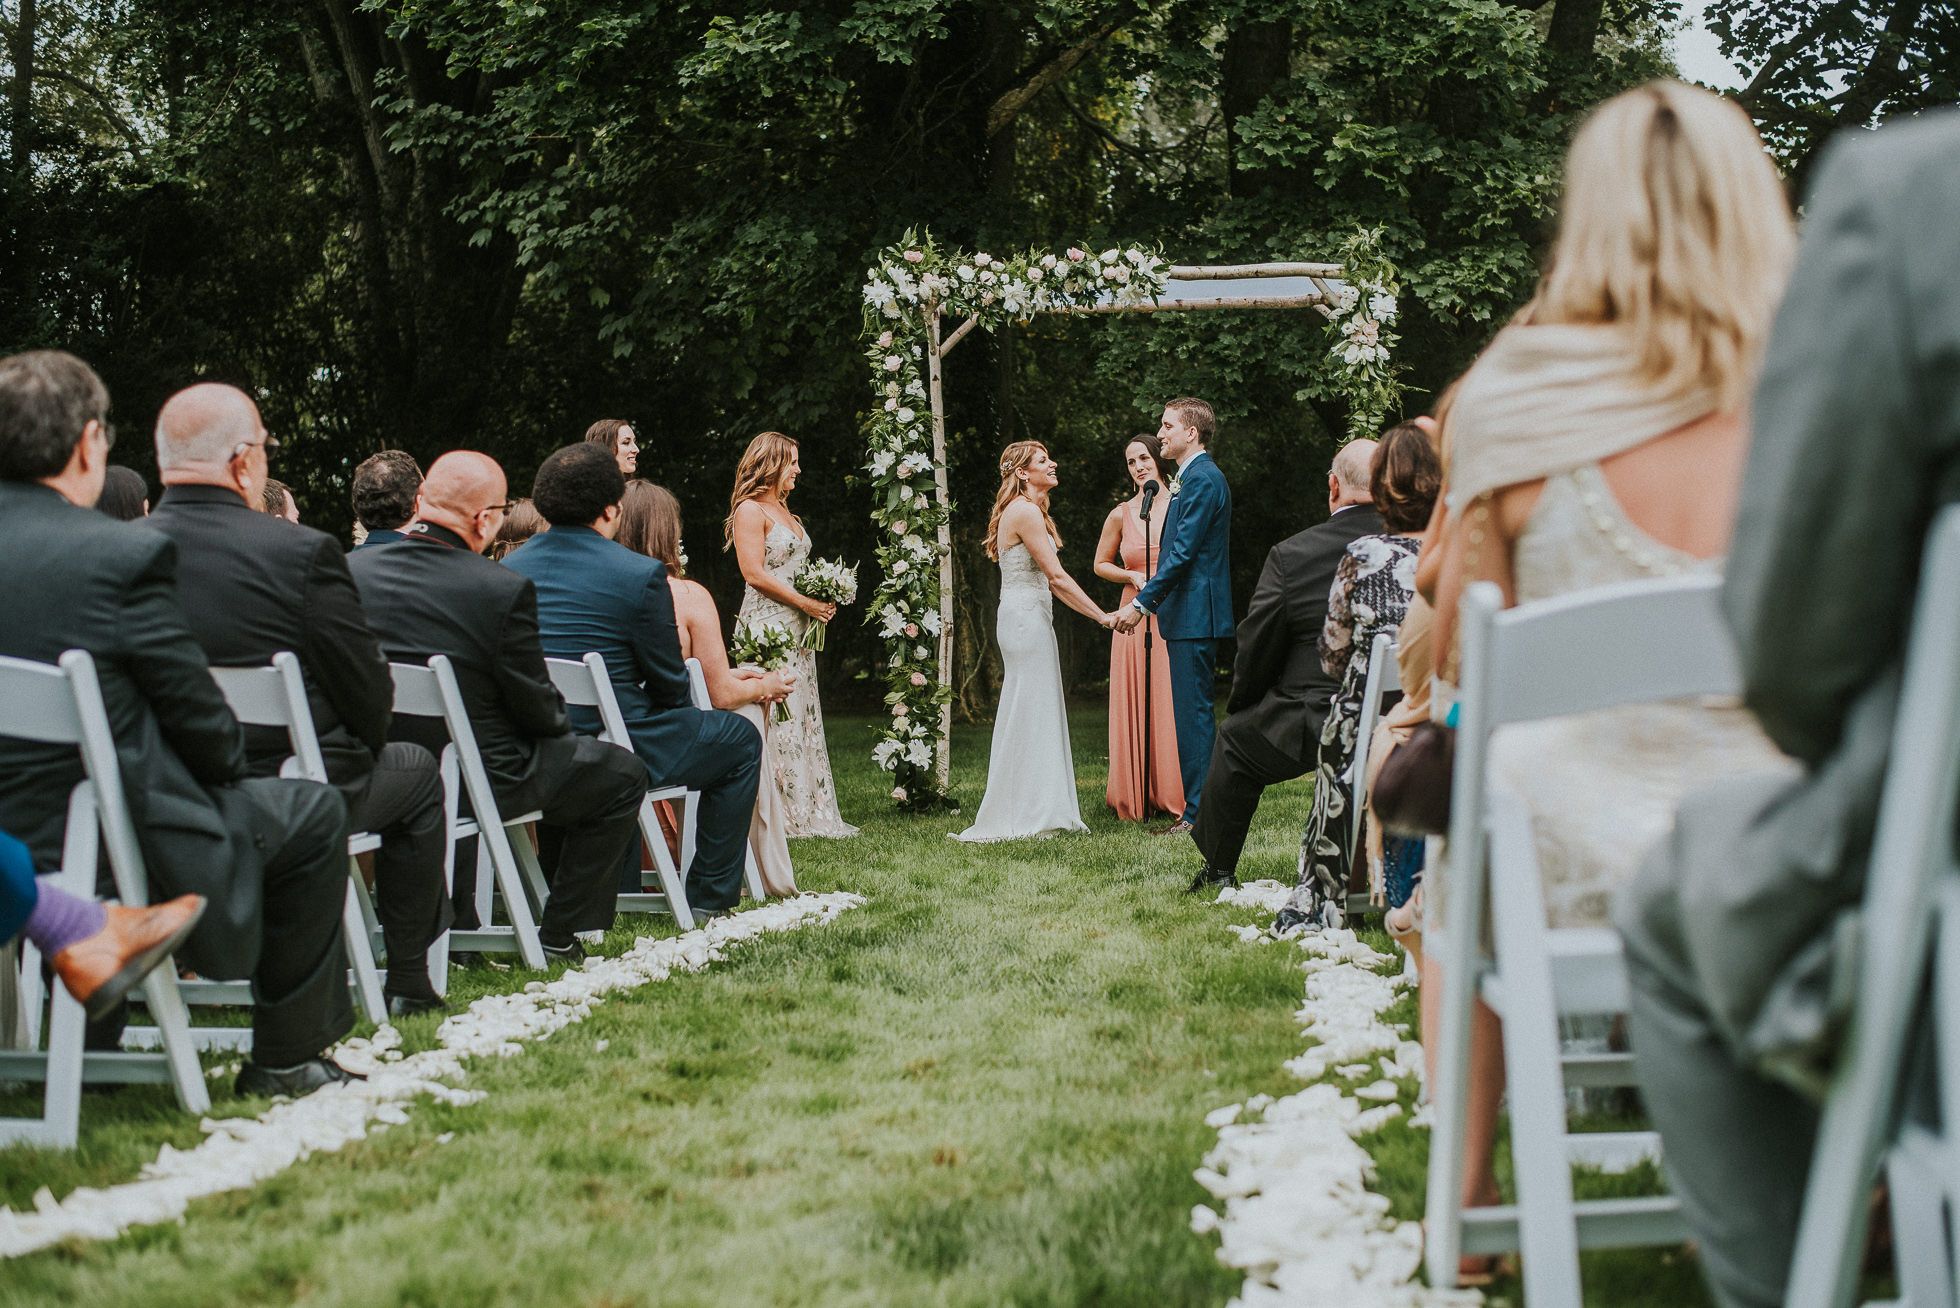 Long Island outdoor wedding venues